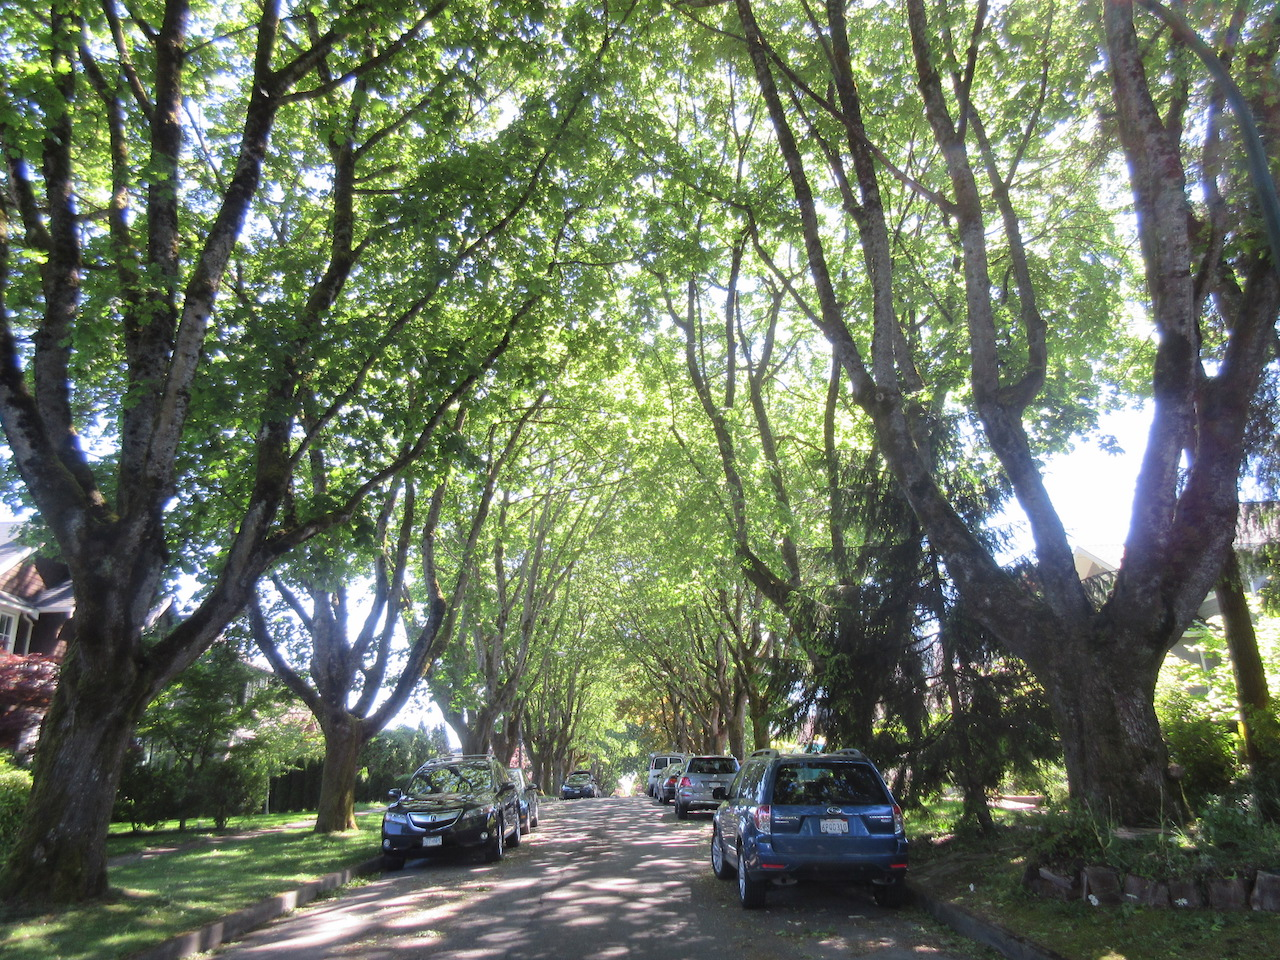 Vancouver West Side Green Trees Canopy street